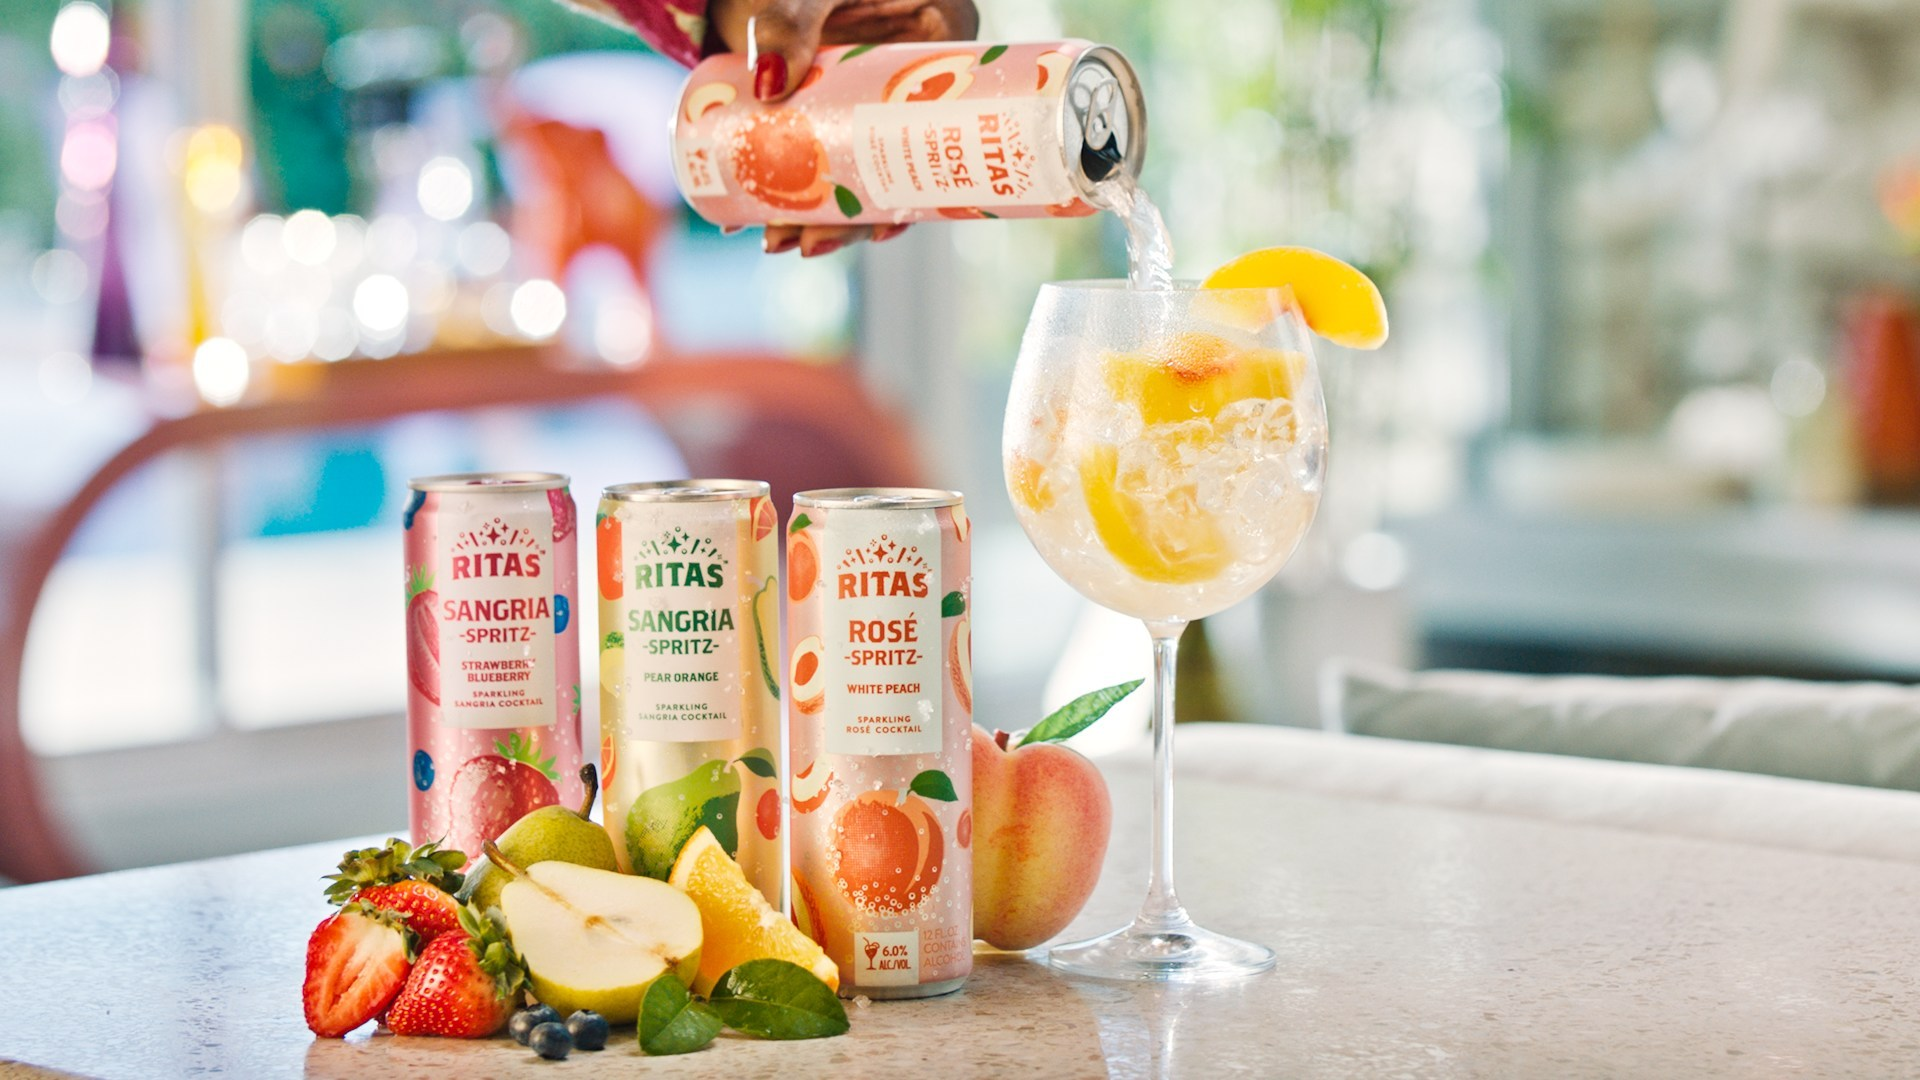 Rita Spritz Canned Wine Cocktails Are Perfect for Poolside Sipping